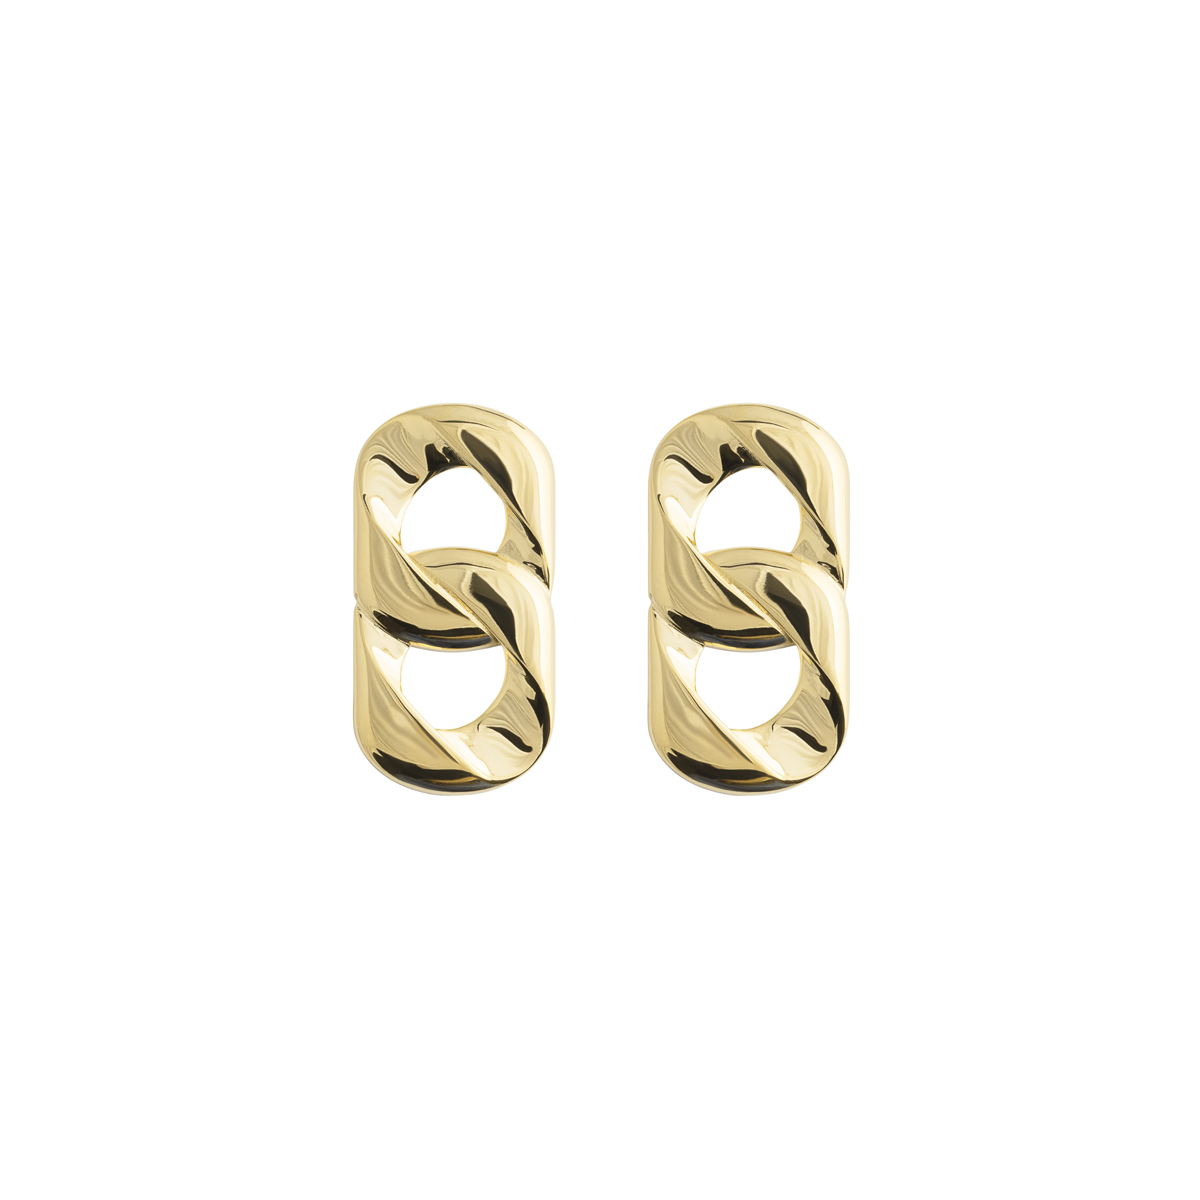 Big Link Earrings Gold in the group SHOP / EARRINGS at EMMA ISRAELSSON (ear089)